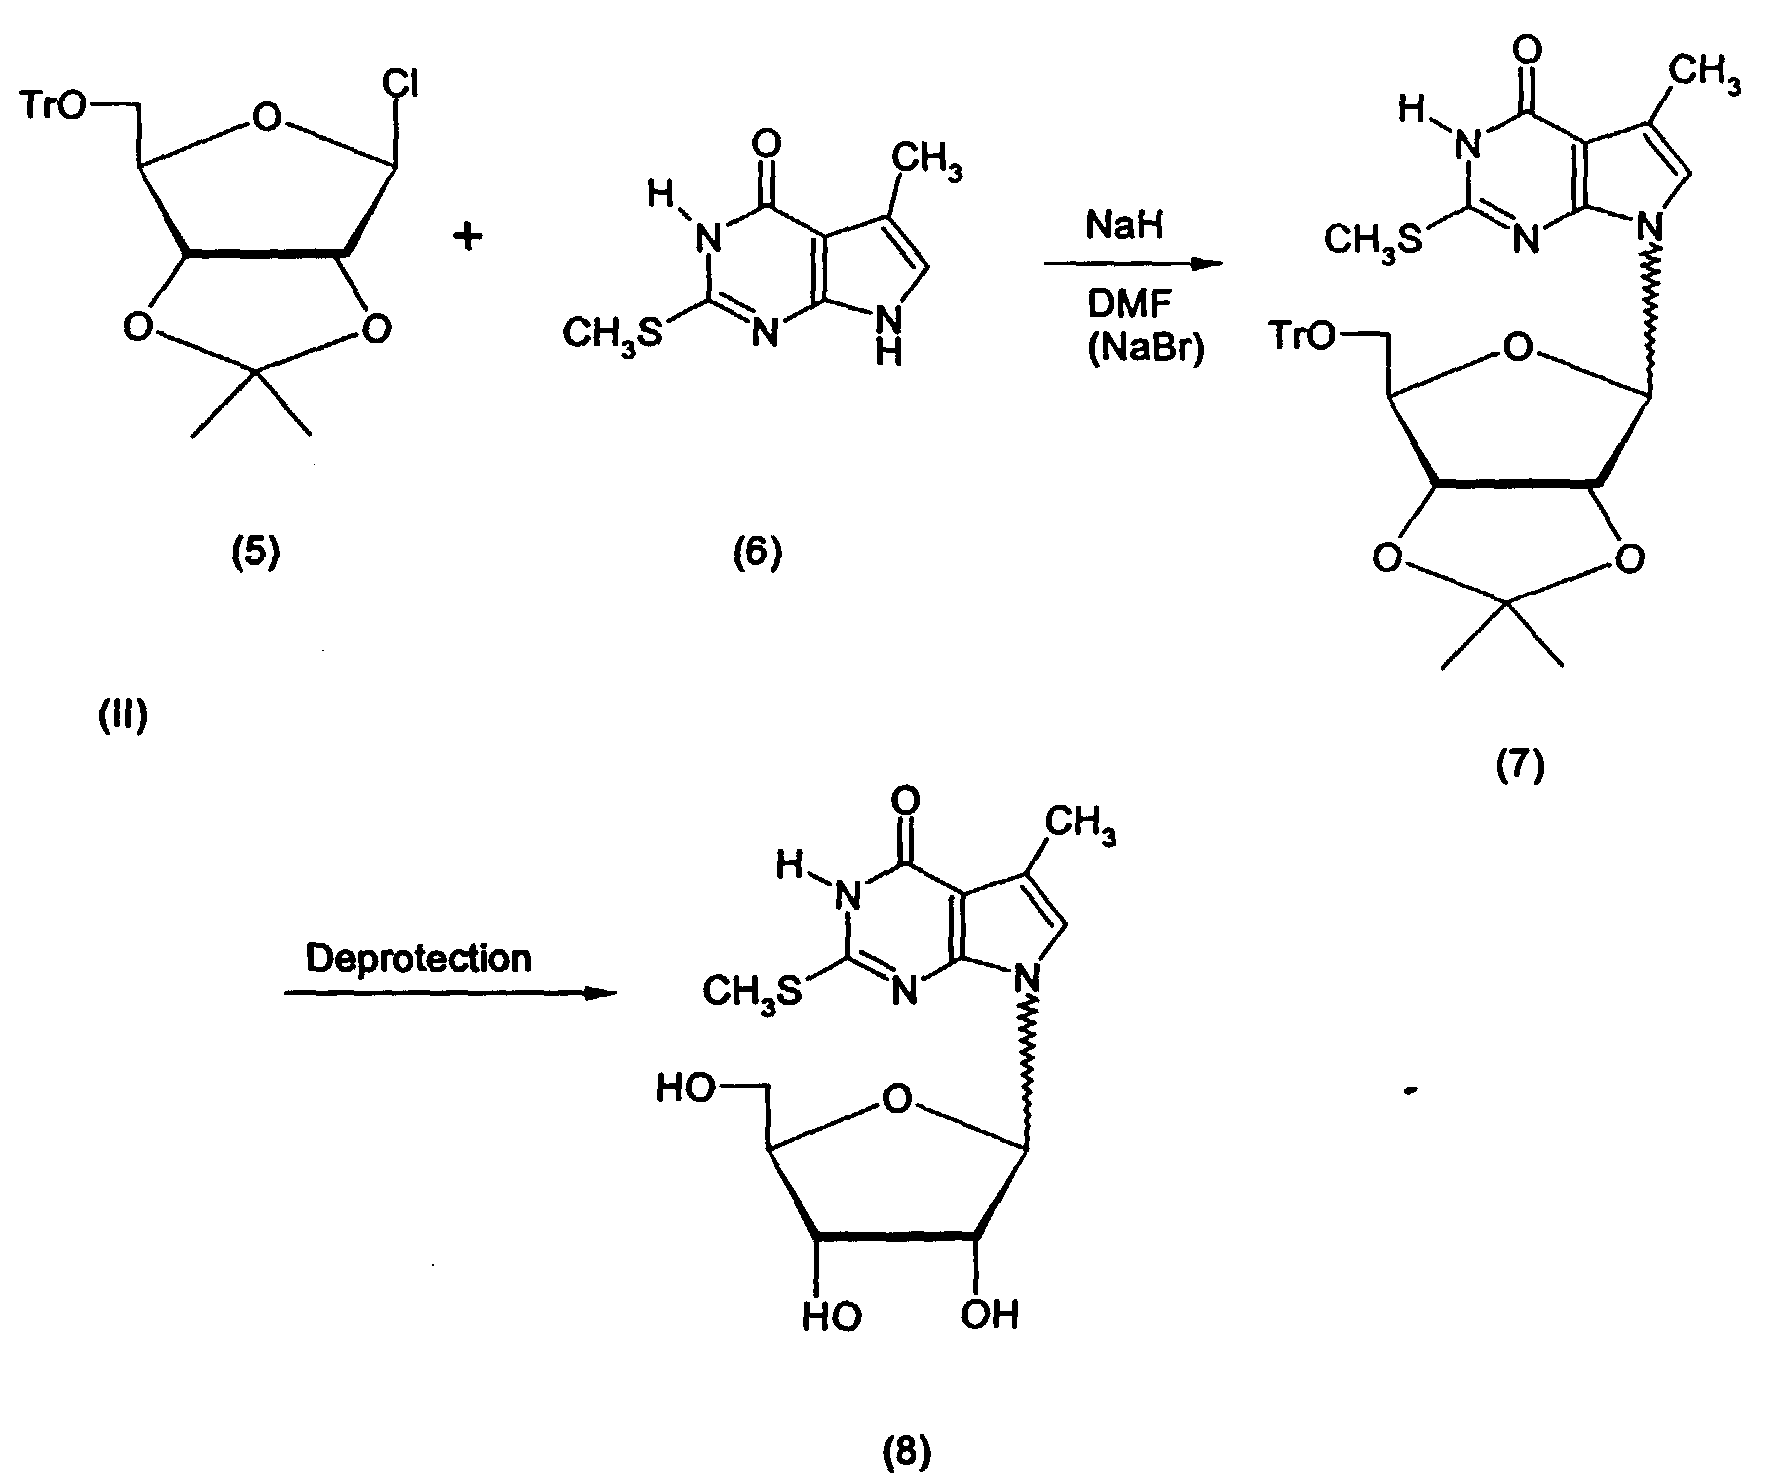 hight resolution of in kondo an mixture of nucleoside analog 8 was synthesized by coupling furanosyl chloride 5 with the heterocycle anion of 6 to yield the